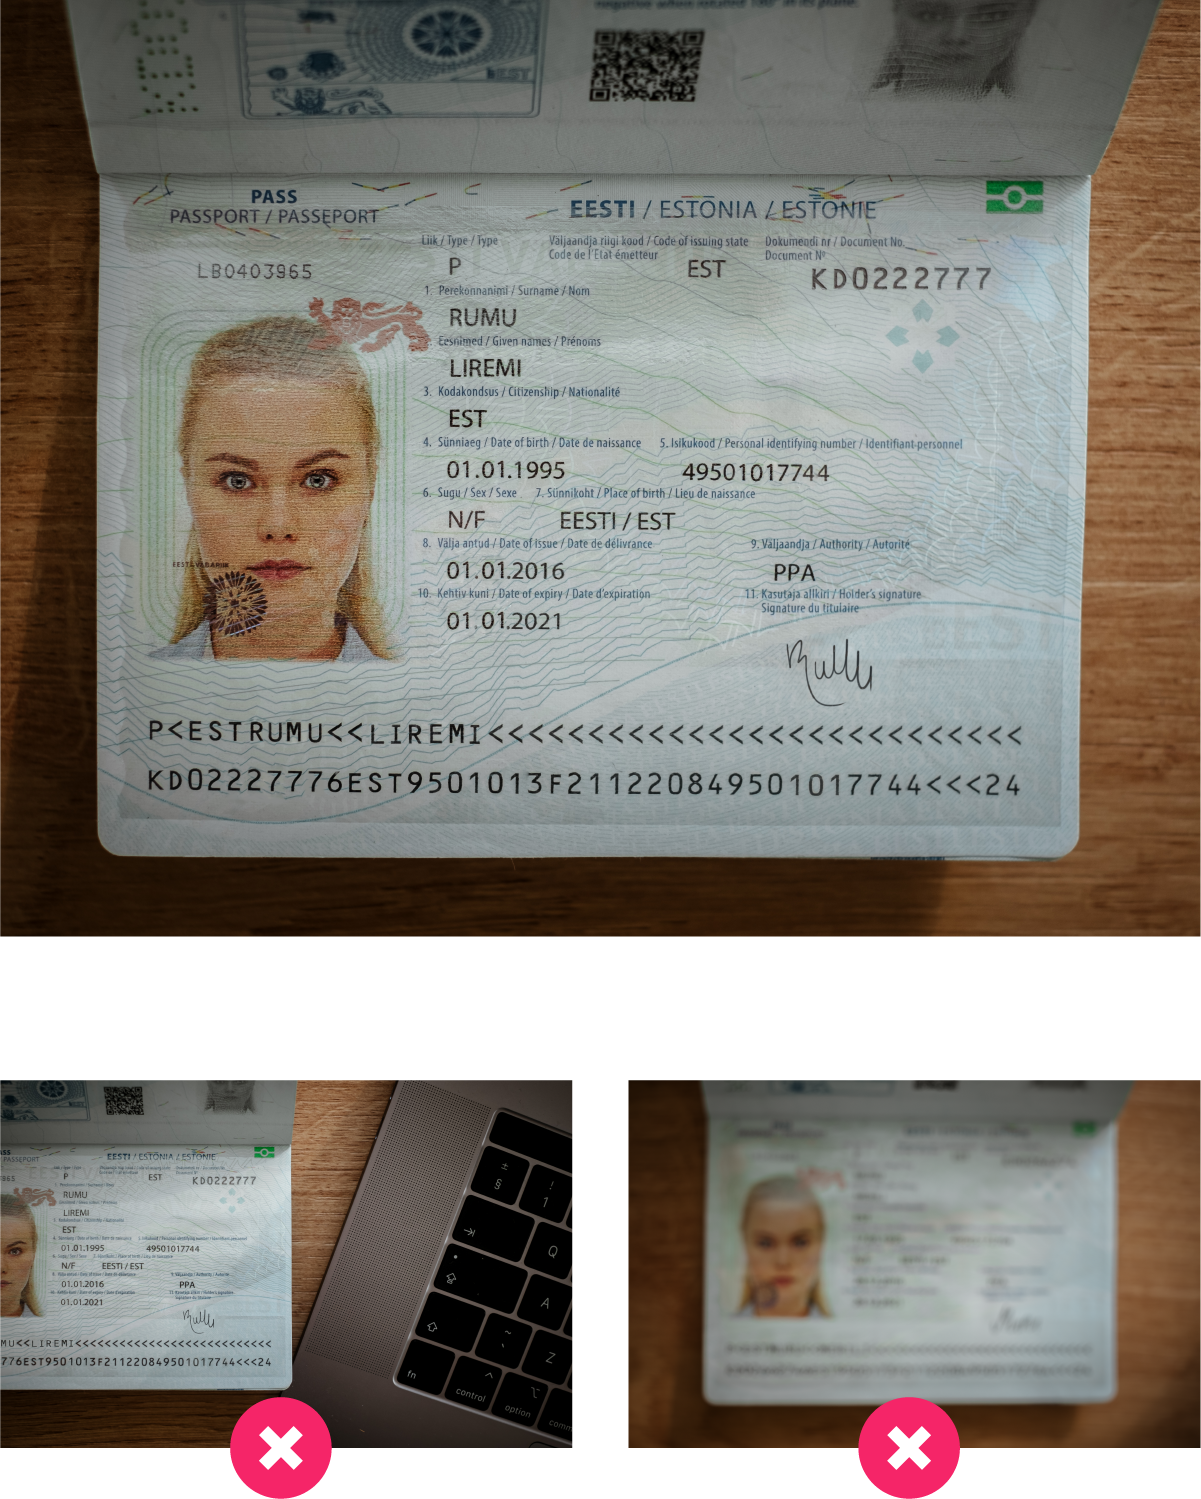 Both pages of your passport are needed to verify your identity